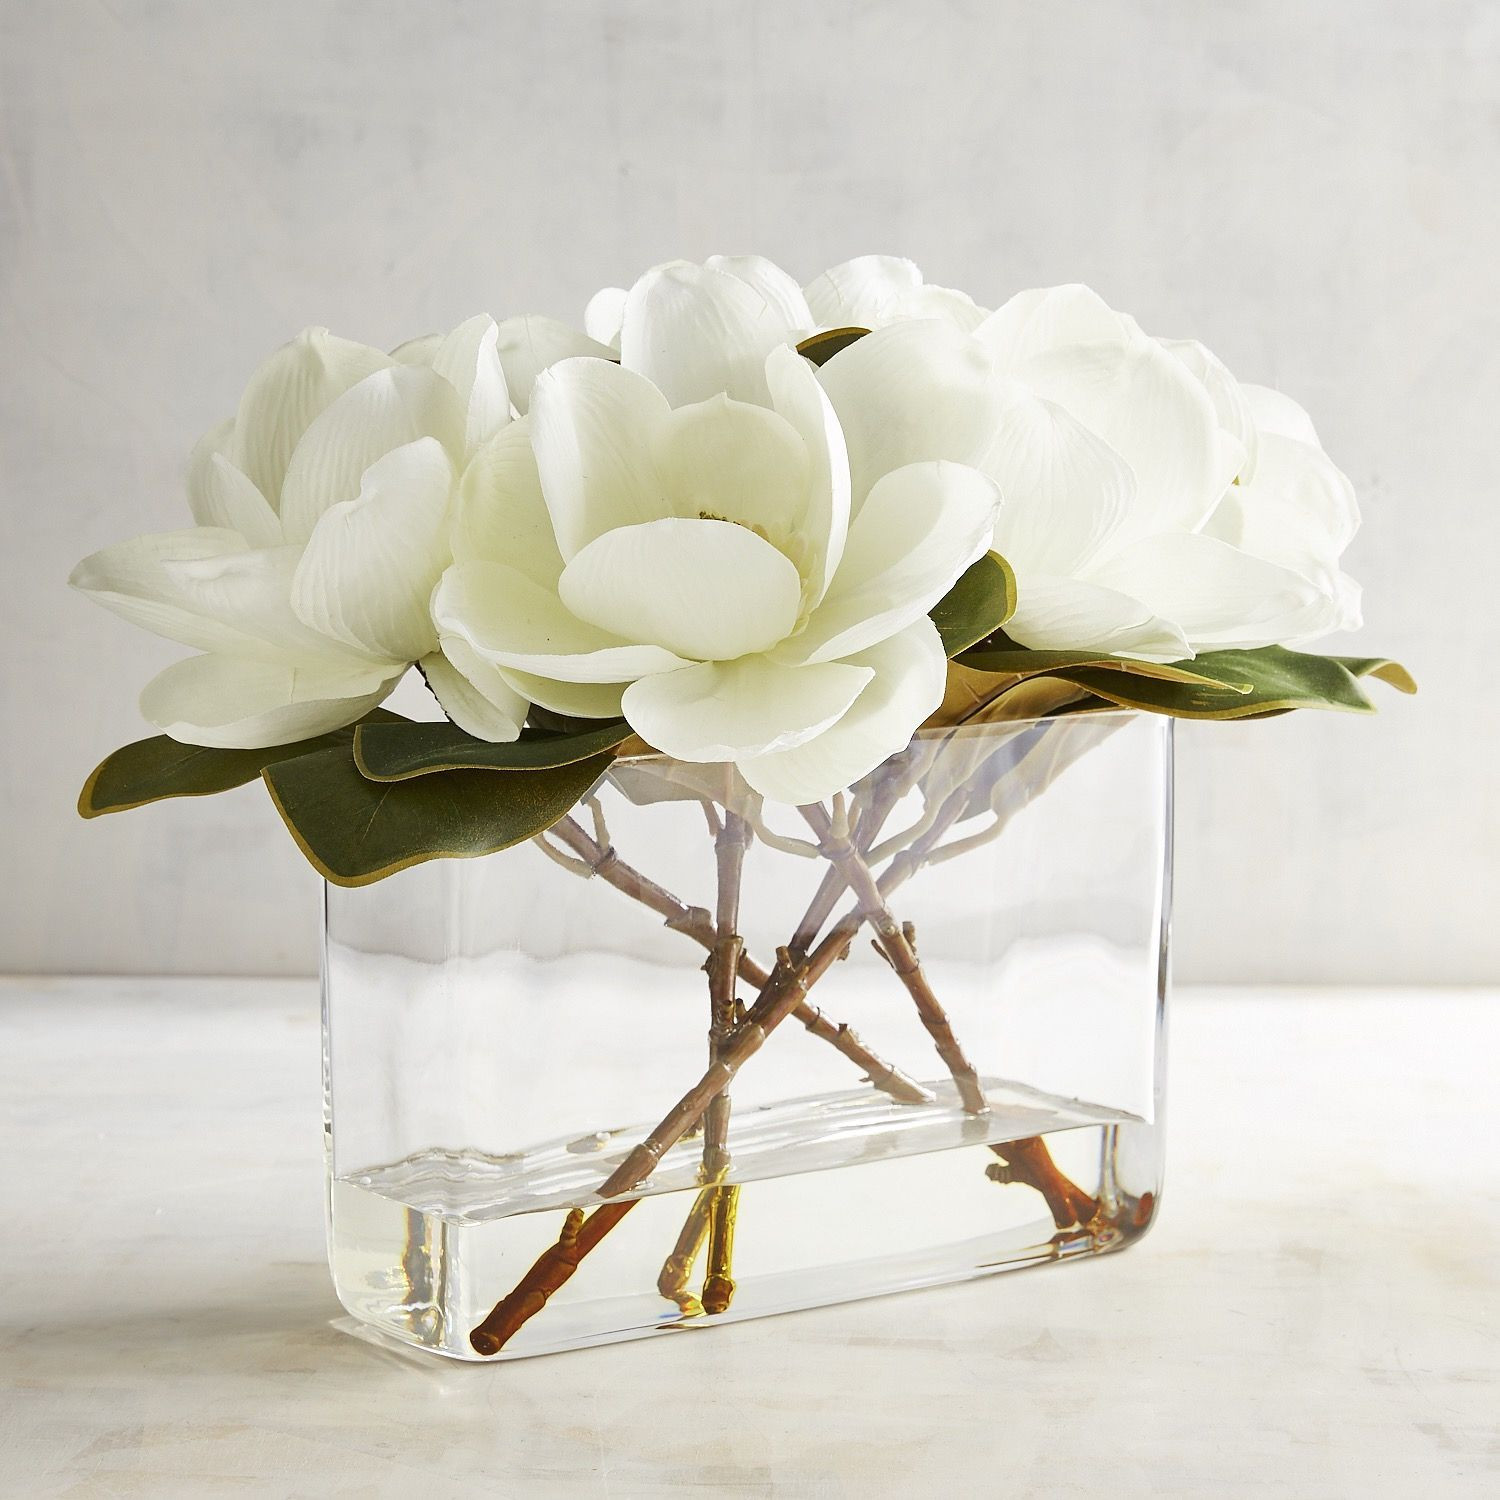 pier 1 imports flower vases of faux magnolia arrangement white pinterest magnolia and products throughout faux magnolia arrangement white